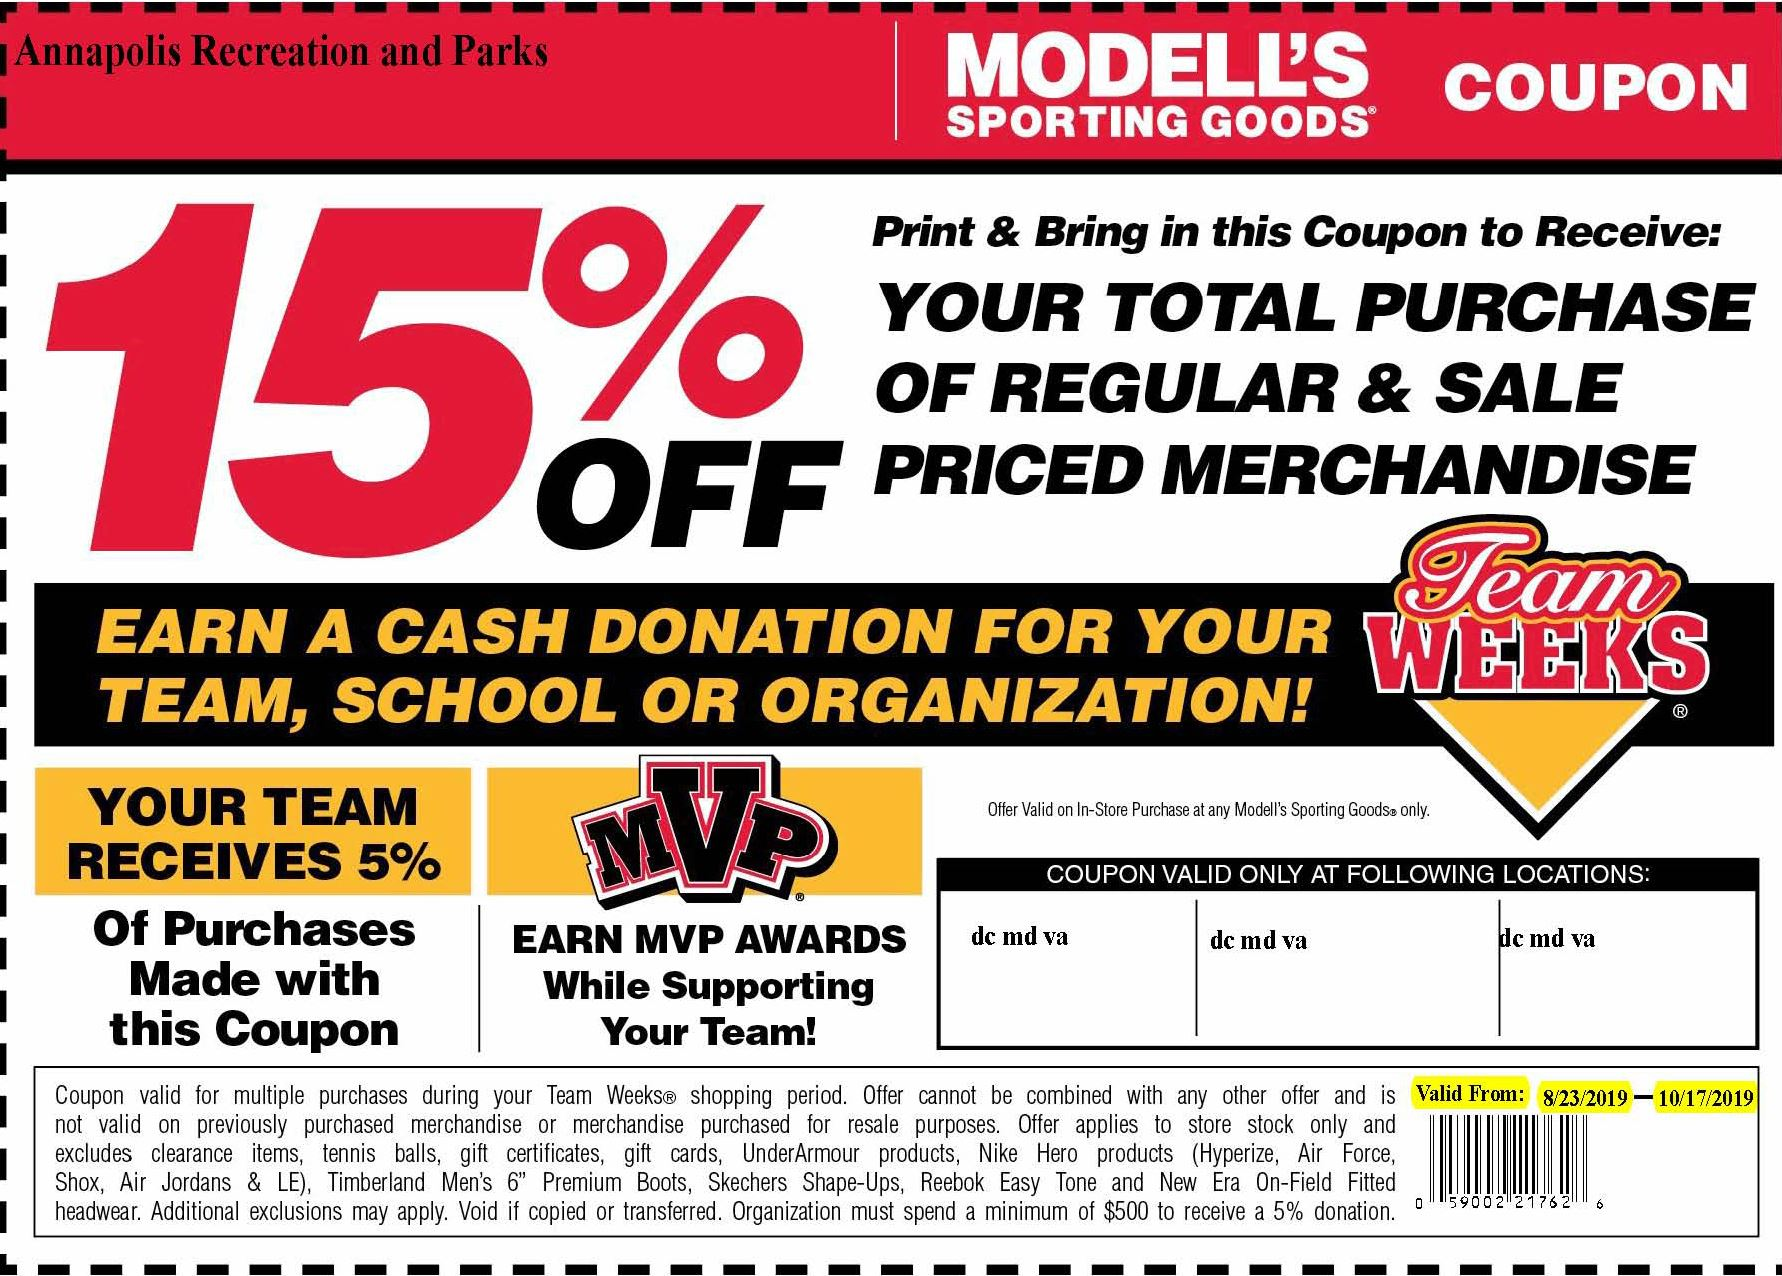 Modells Coupon 082319-101719